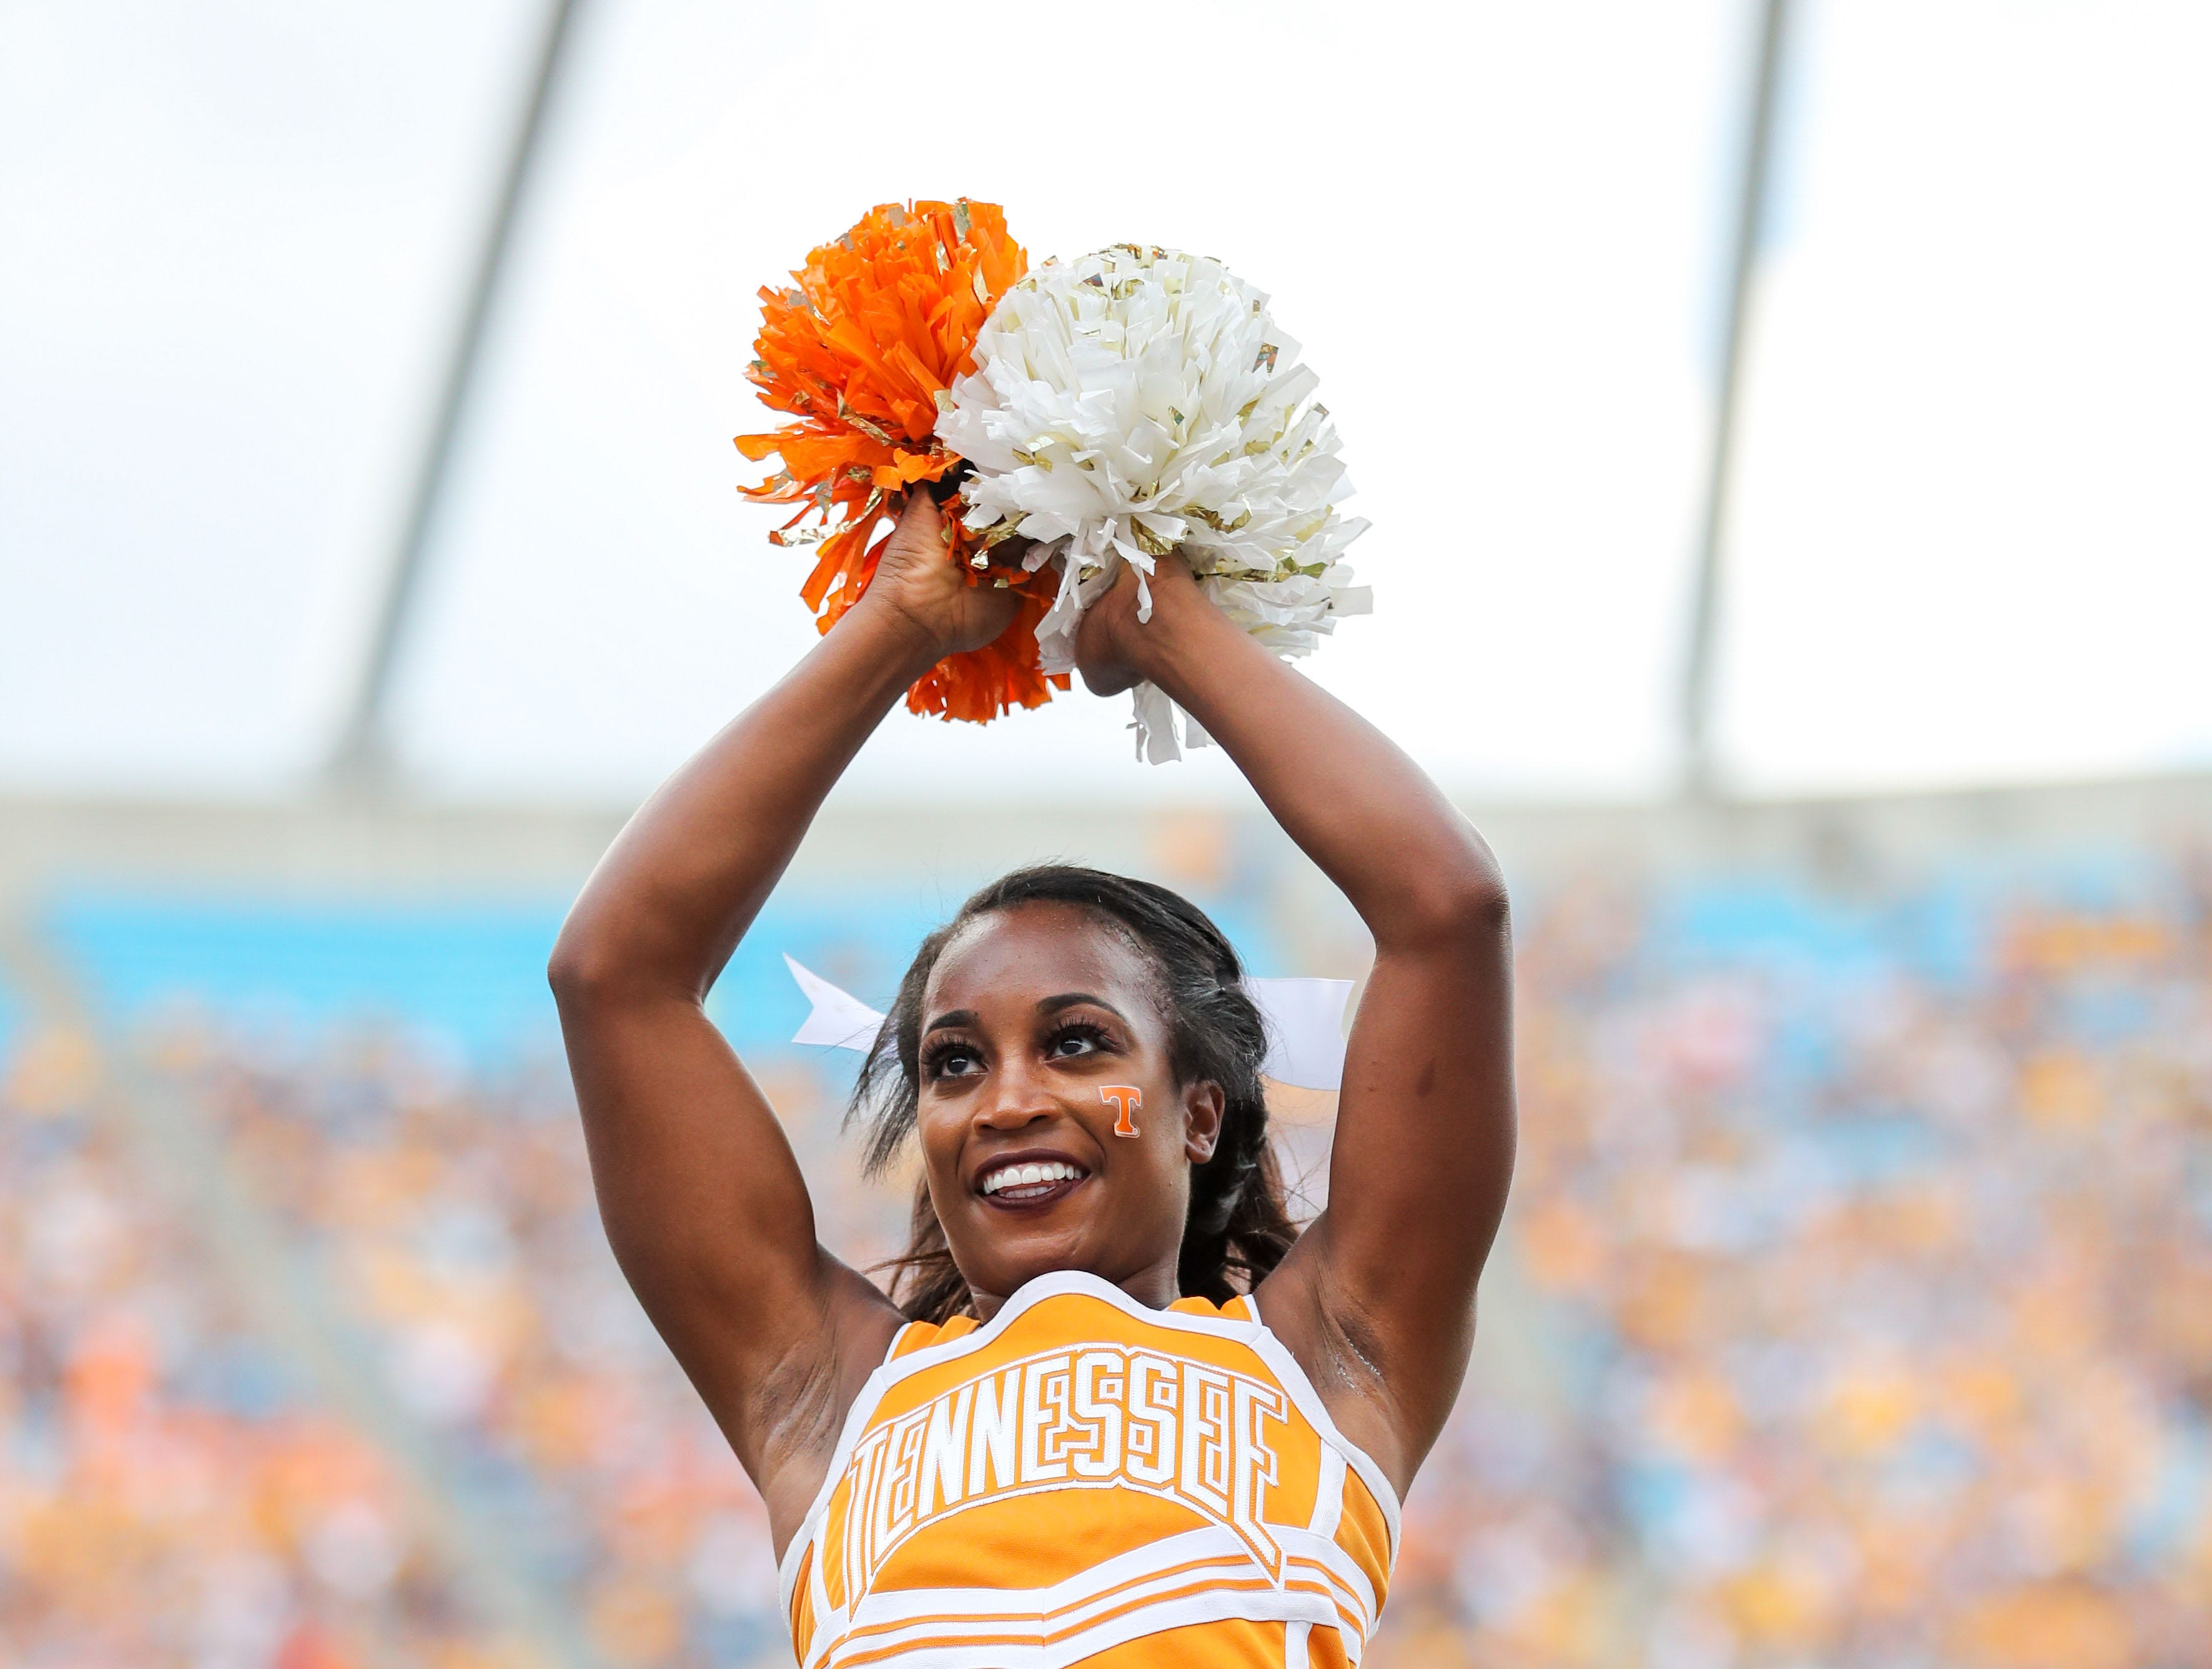 Sep 1, 2018; Charlotte, NC, USA; A Tennessee Volunteers cheerleader performs during the second quarter against the West Virginia Mountaineers at Bank of America Stadium.